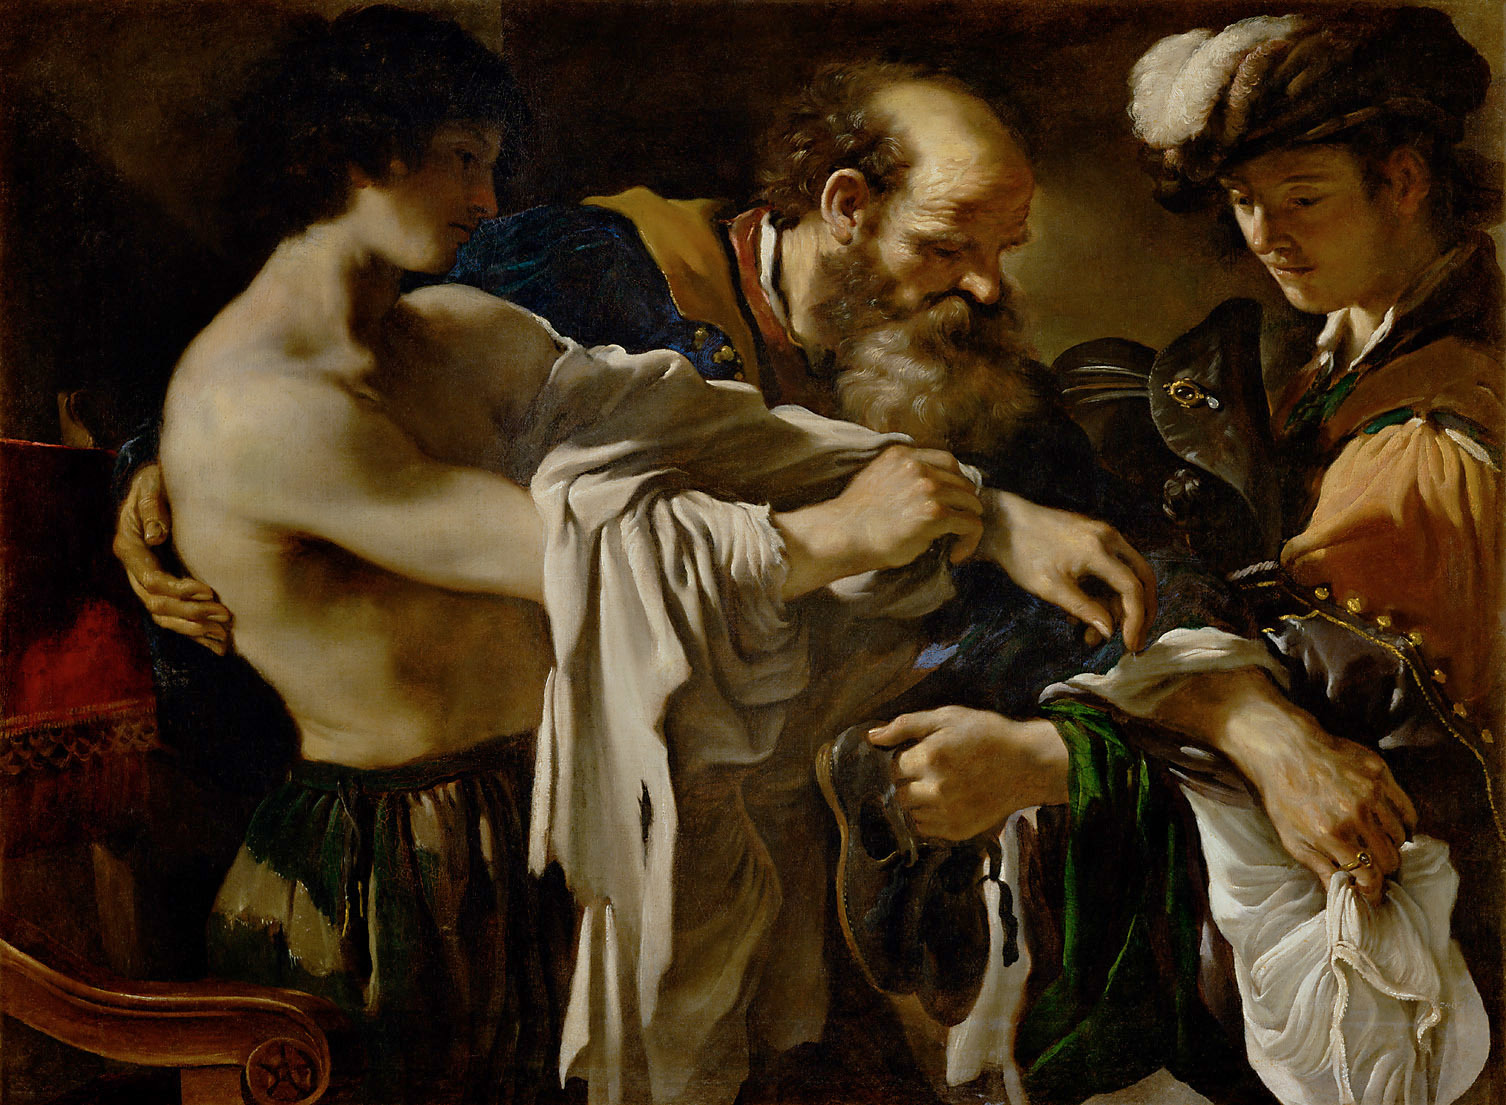 https://upload.wikimedia.org/wikipedia/commons/f/f1/Guercino_005.jpg